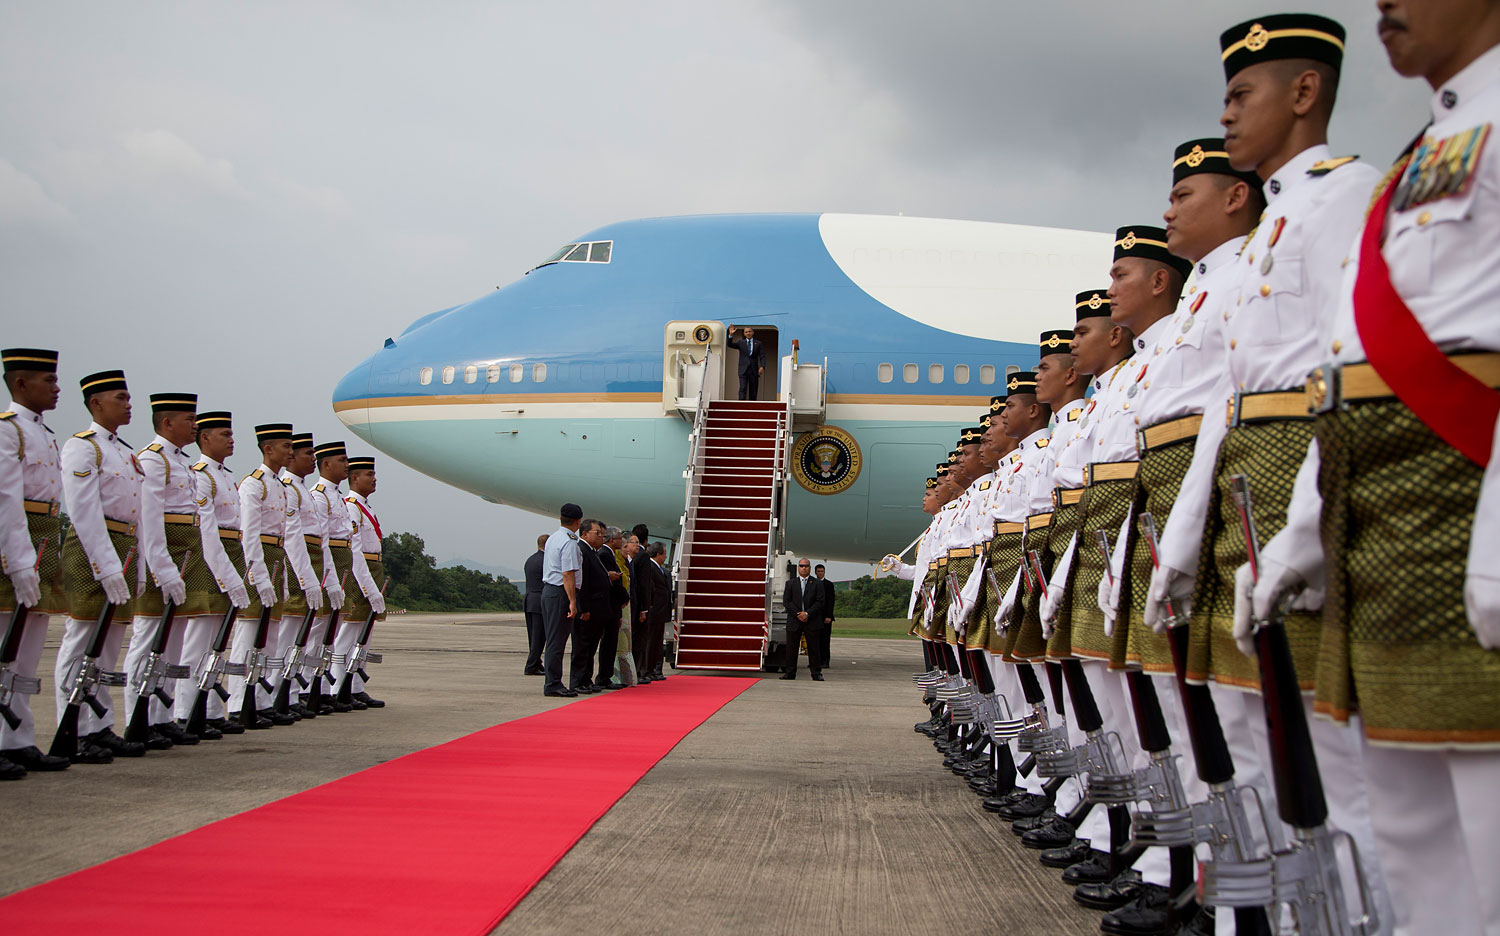 President Barack Obama arrives on Air Force One at the Royal Malaysian Air Force Airbase in Subang, outside of Kuala Lumpur, Malaysia, April 26, 2014.